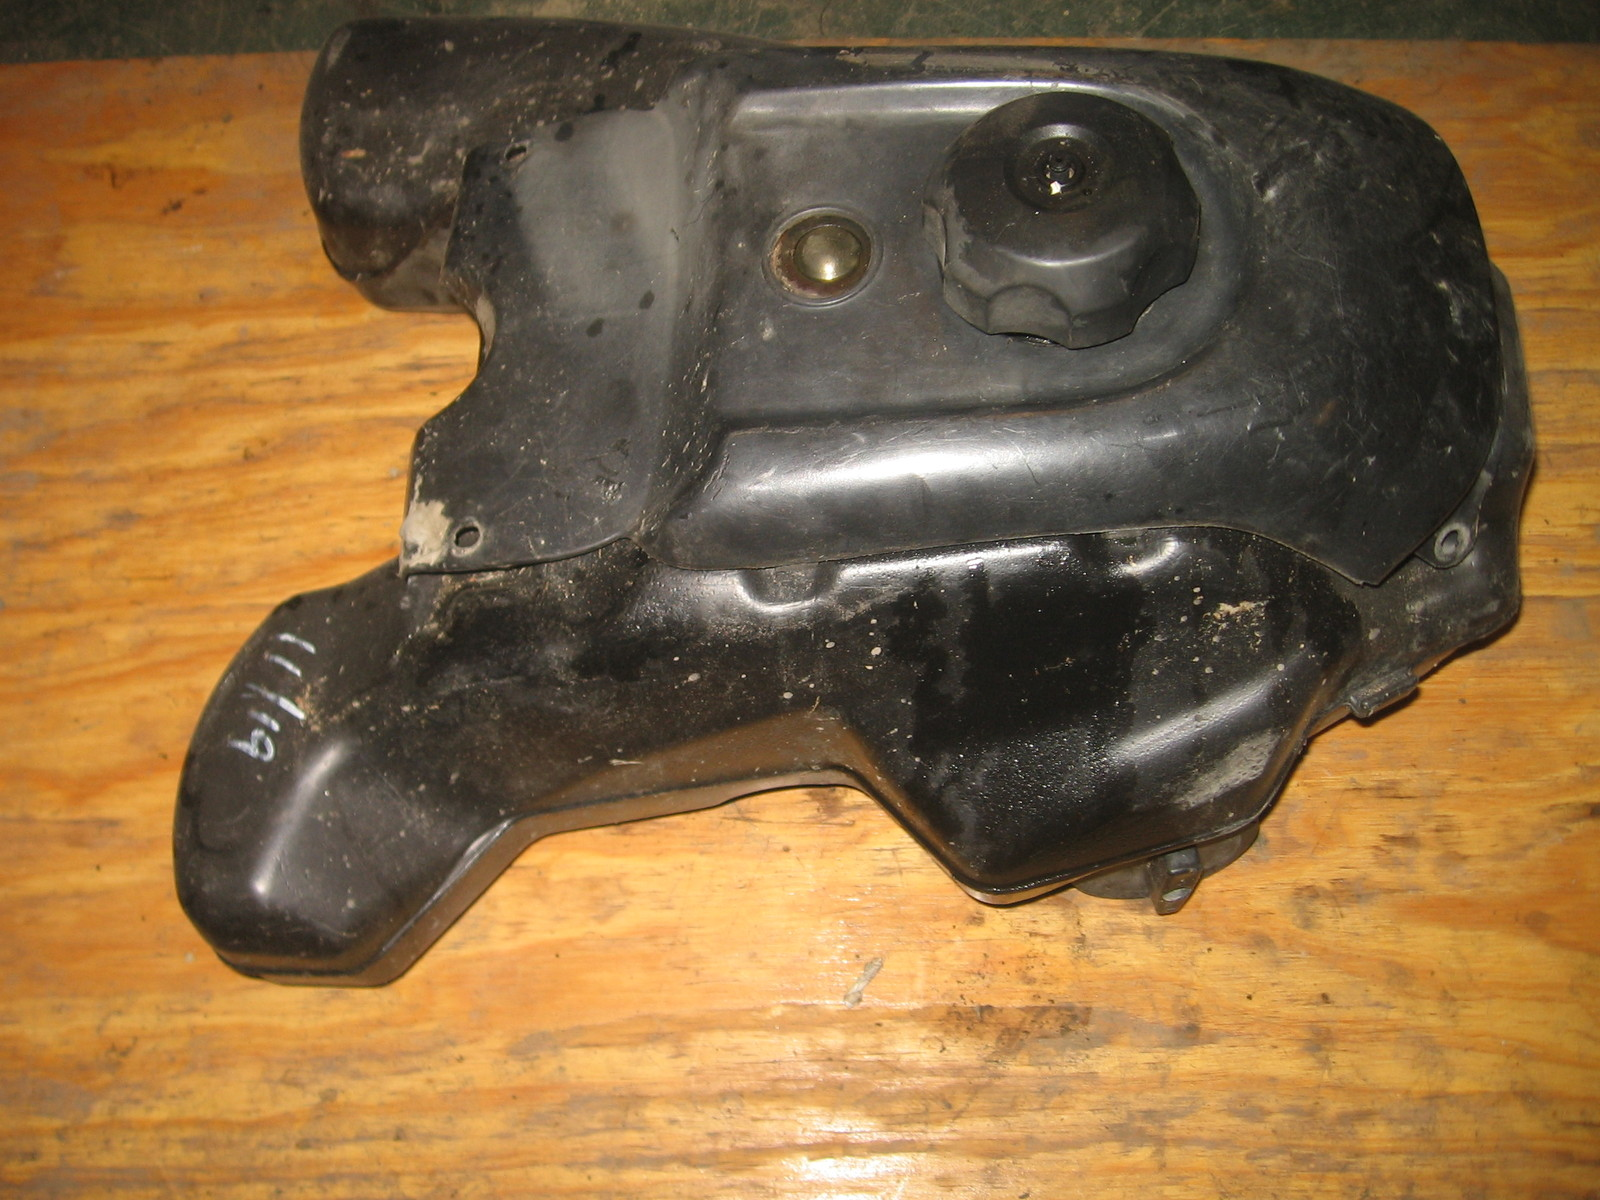 HONDA 2002 FOREMAN RUBICON 500 4X4 GAS TANK, WITH PETCOCK, GAUGE AND CAP   (BIN